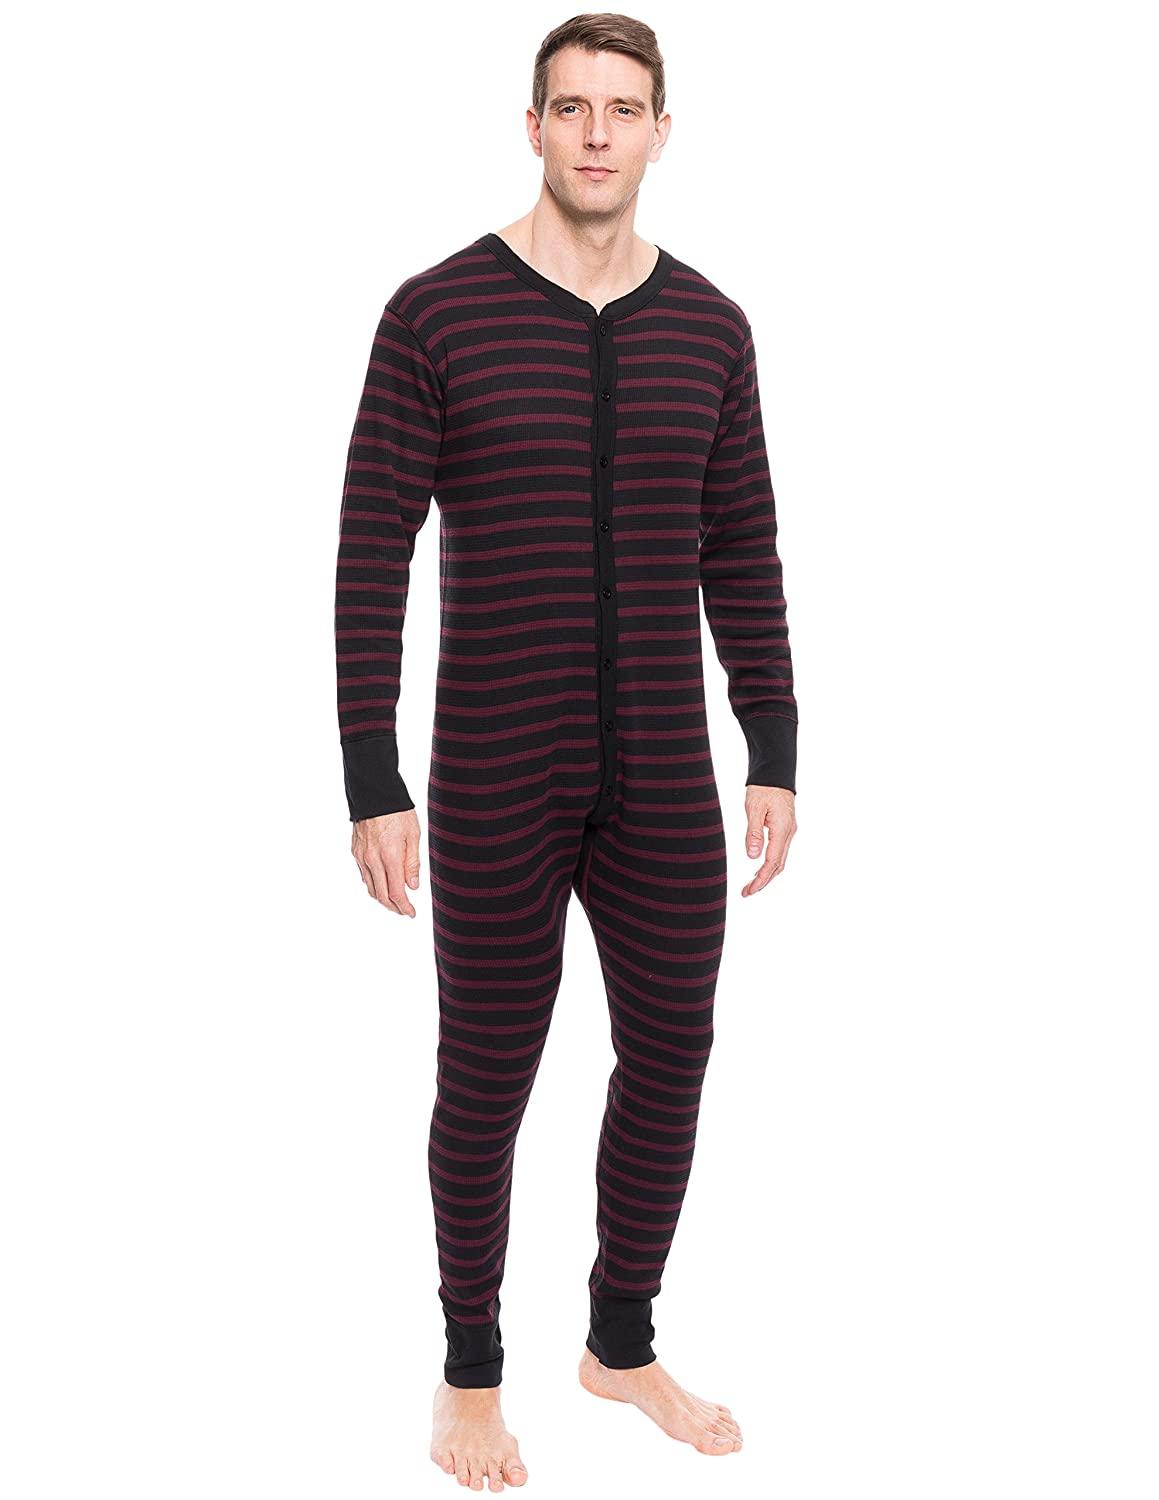 Noble Mount Mens Waffle Knit Thermal Union Suit nmt_mn_us_wfl